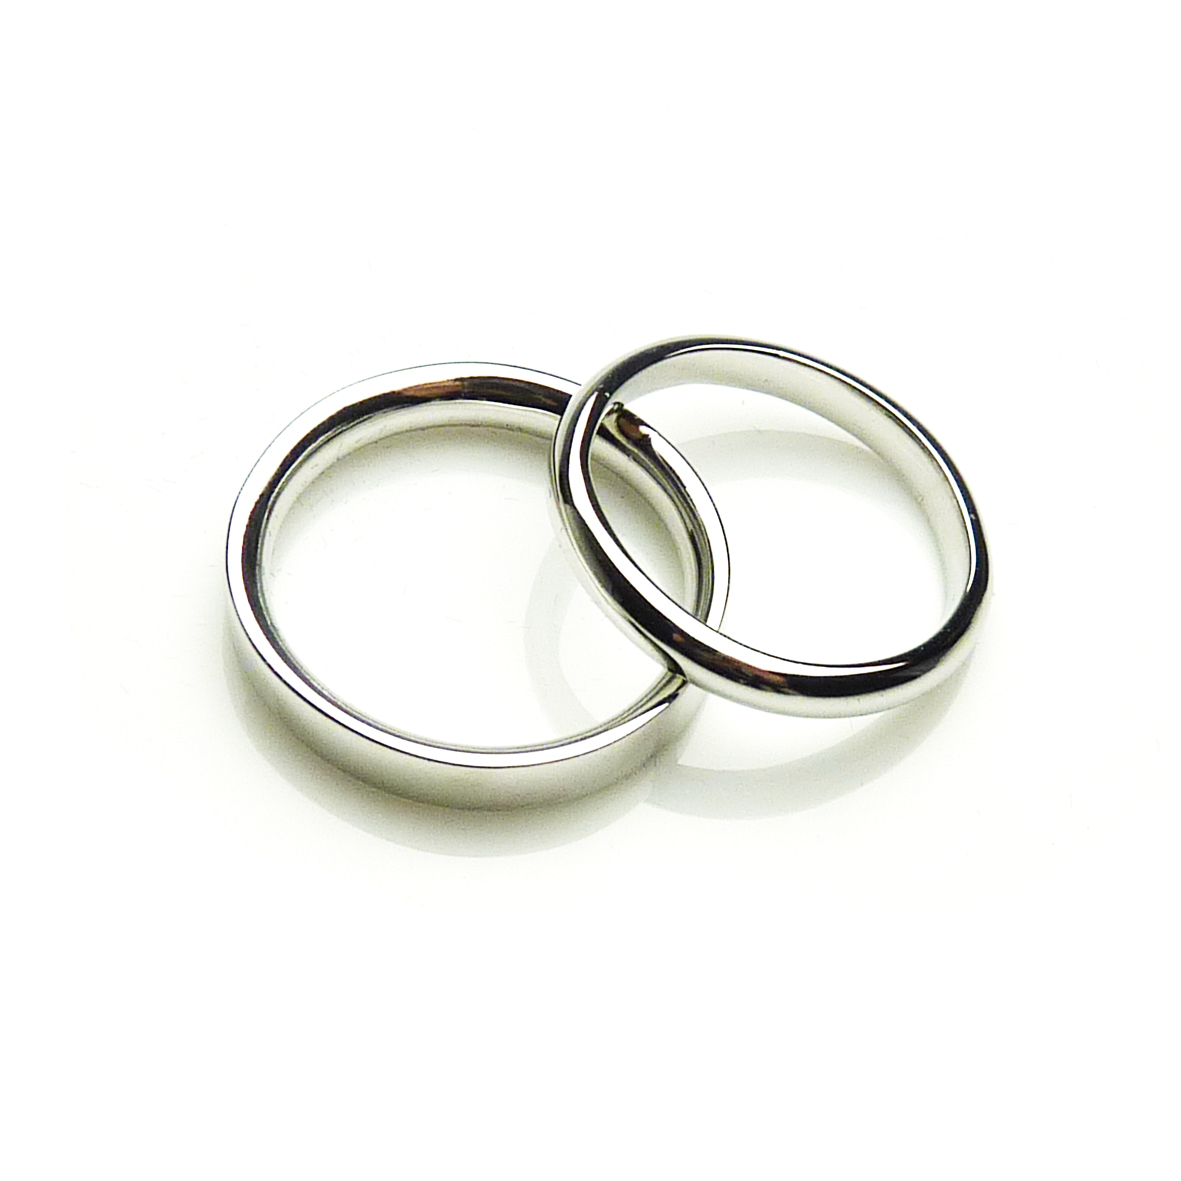 Debbie and Jamie's 9ct White Gold Rings